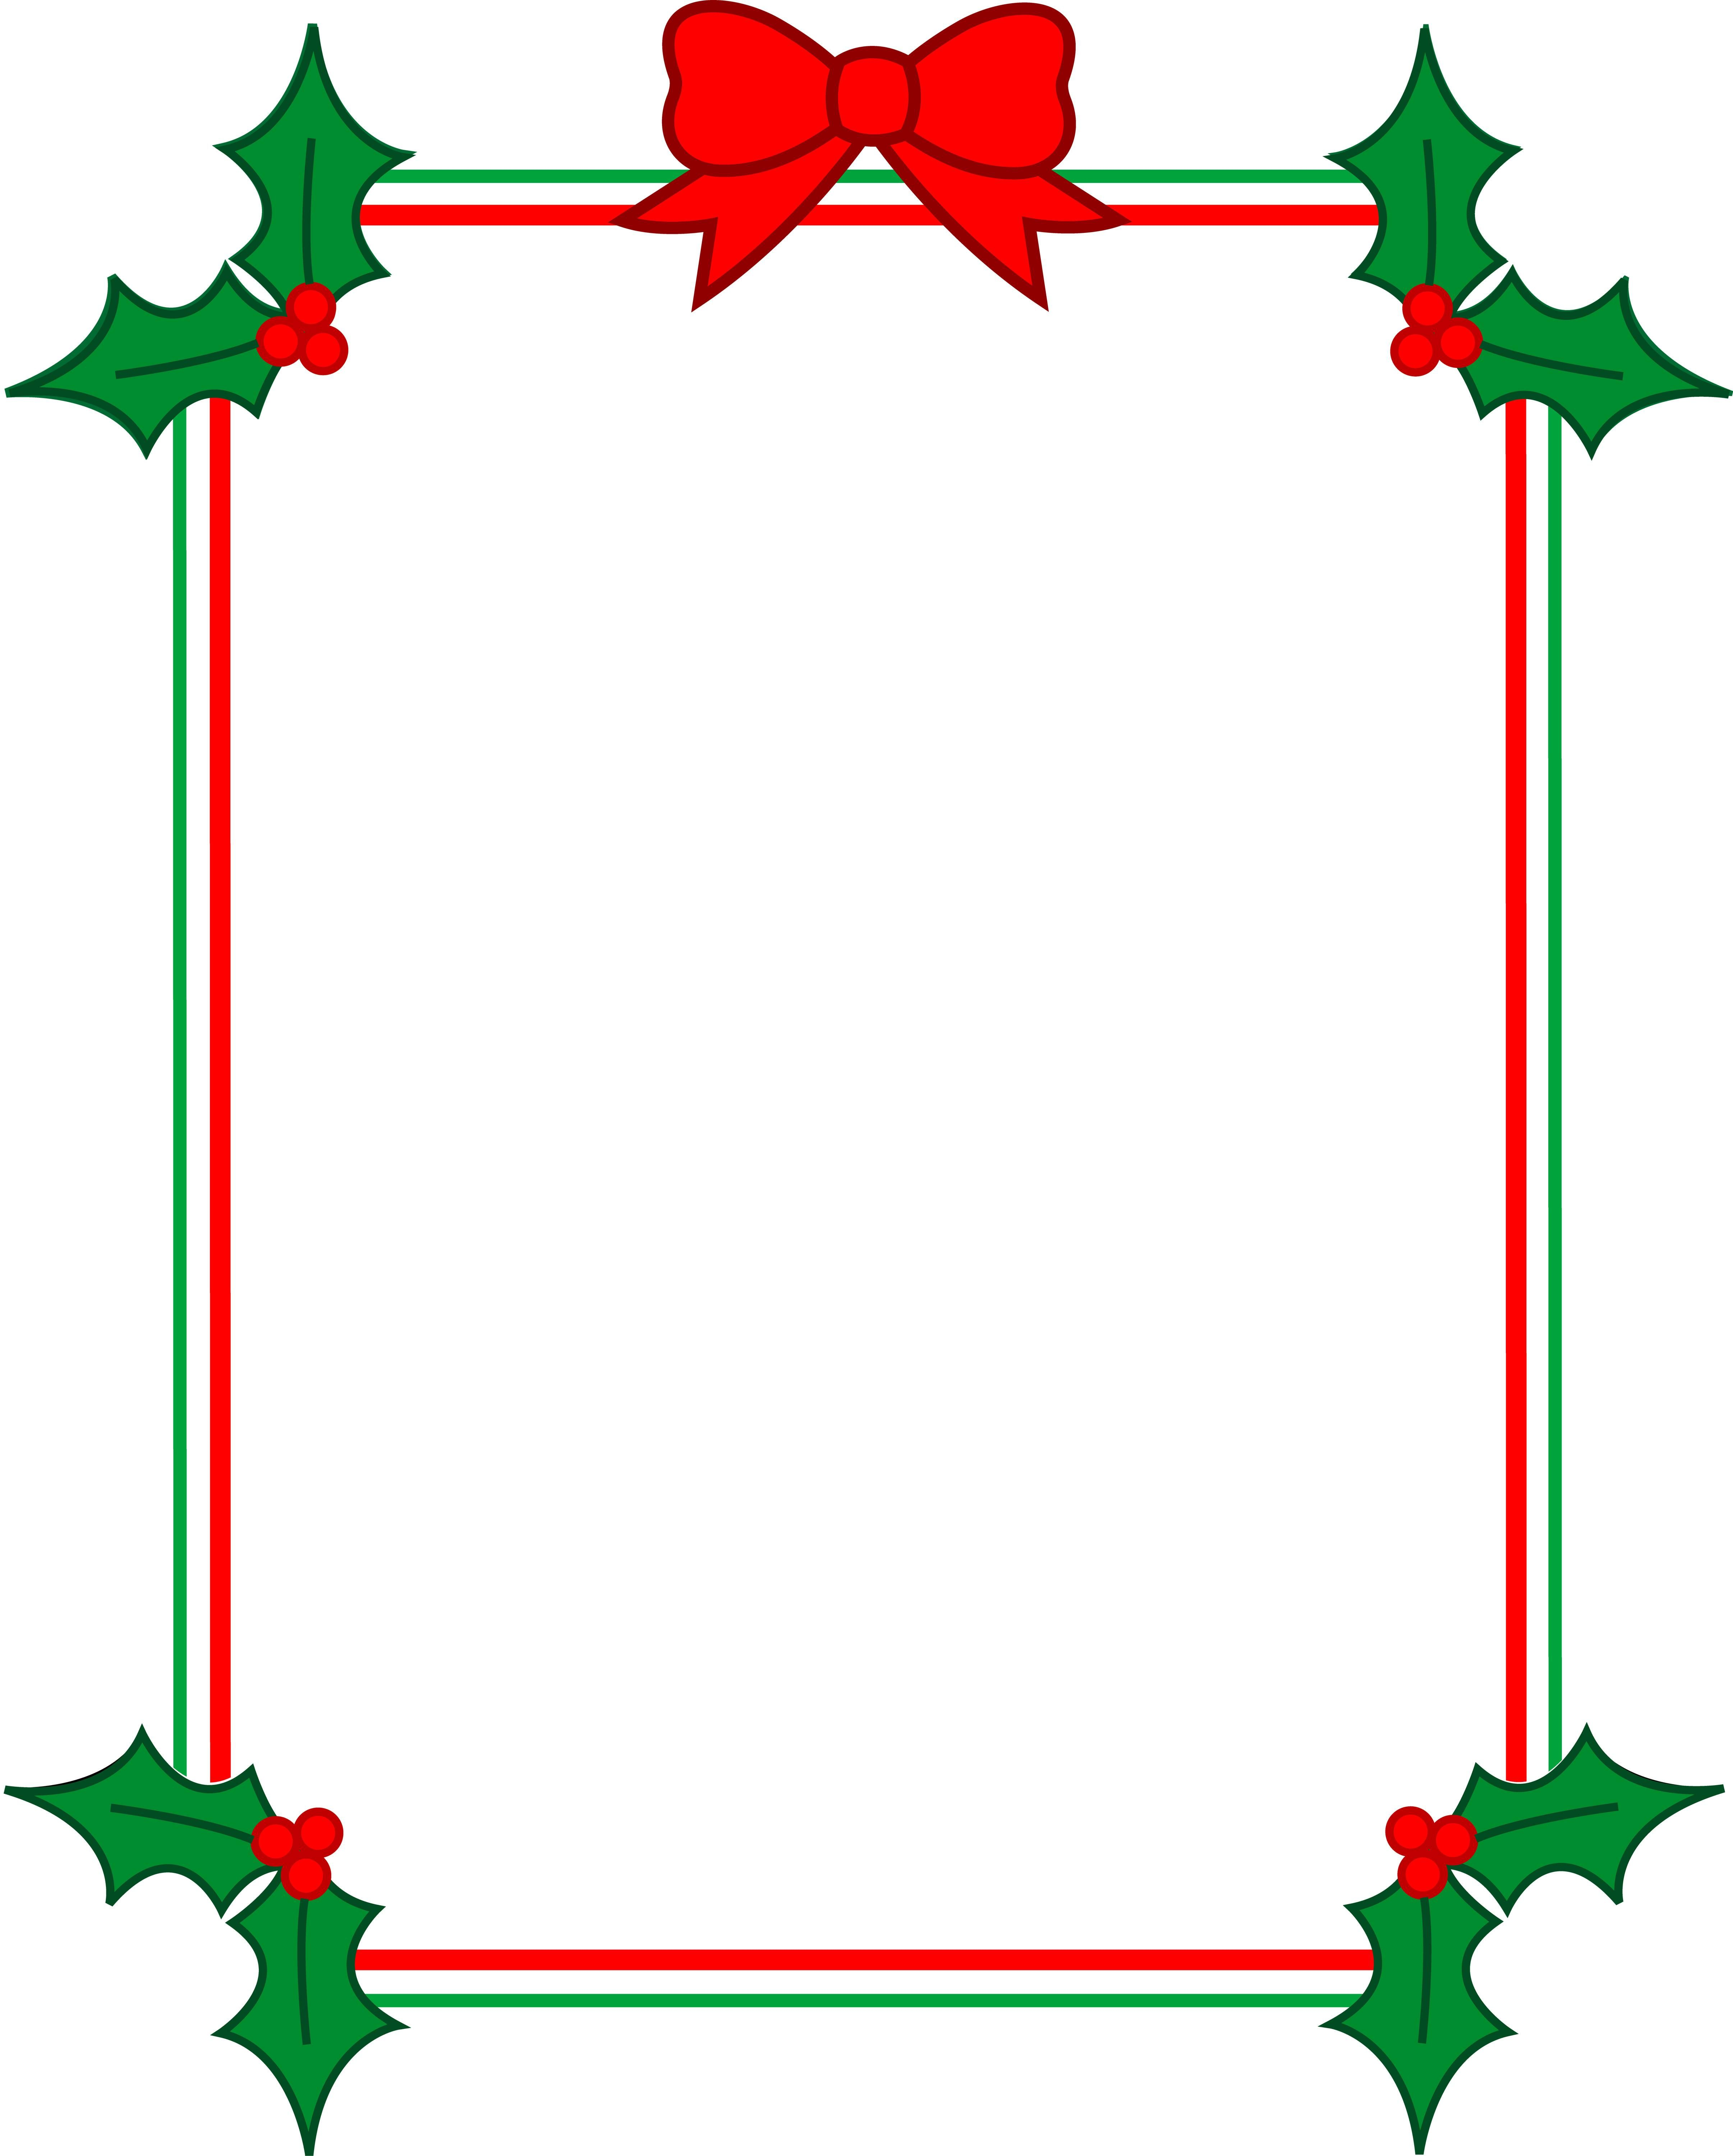 image freeuse download Christmas clipart page borders. For microsoft word library